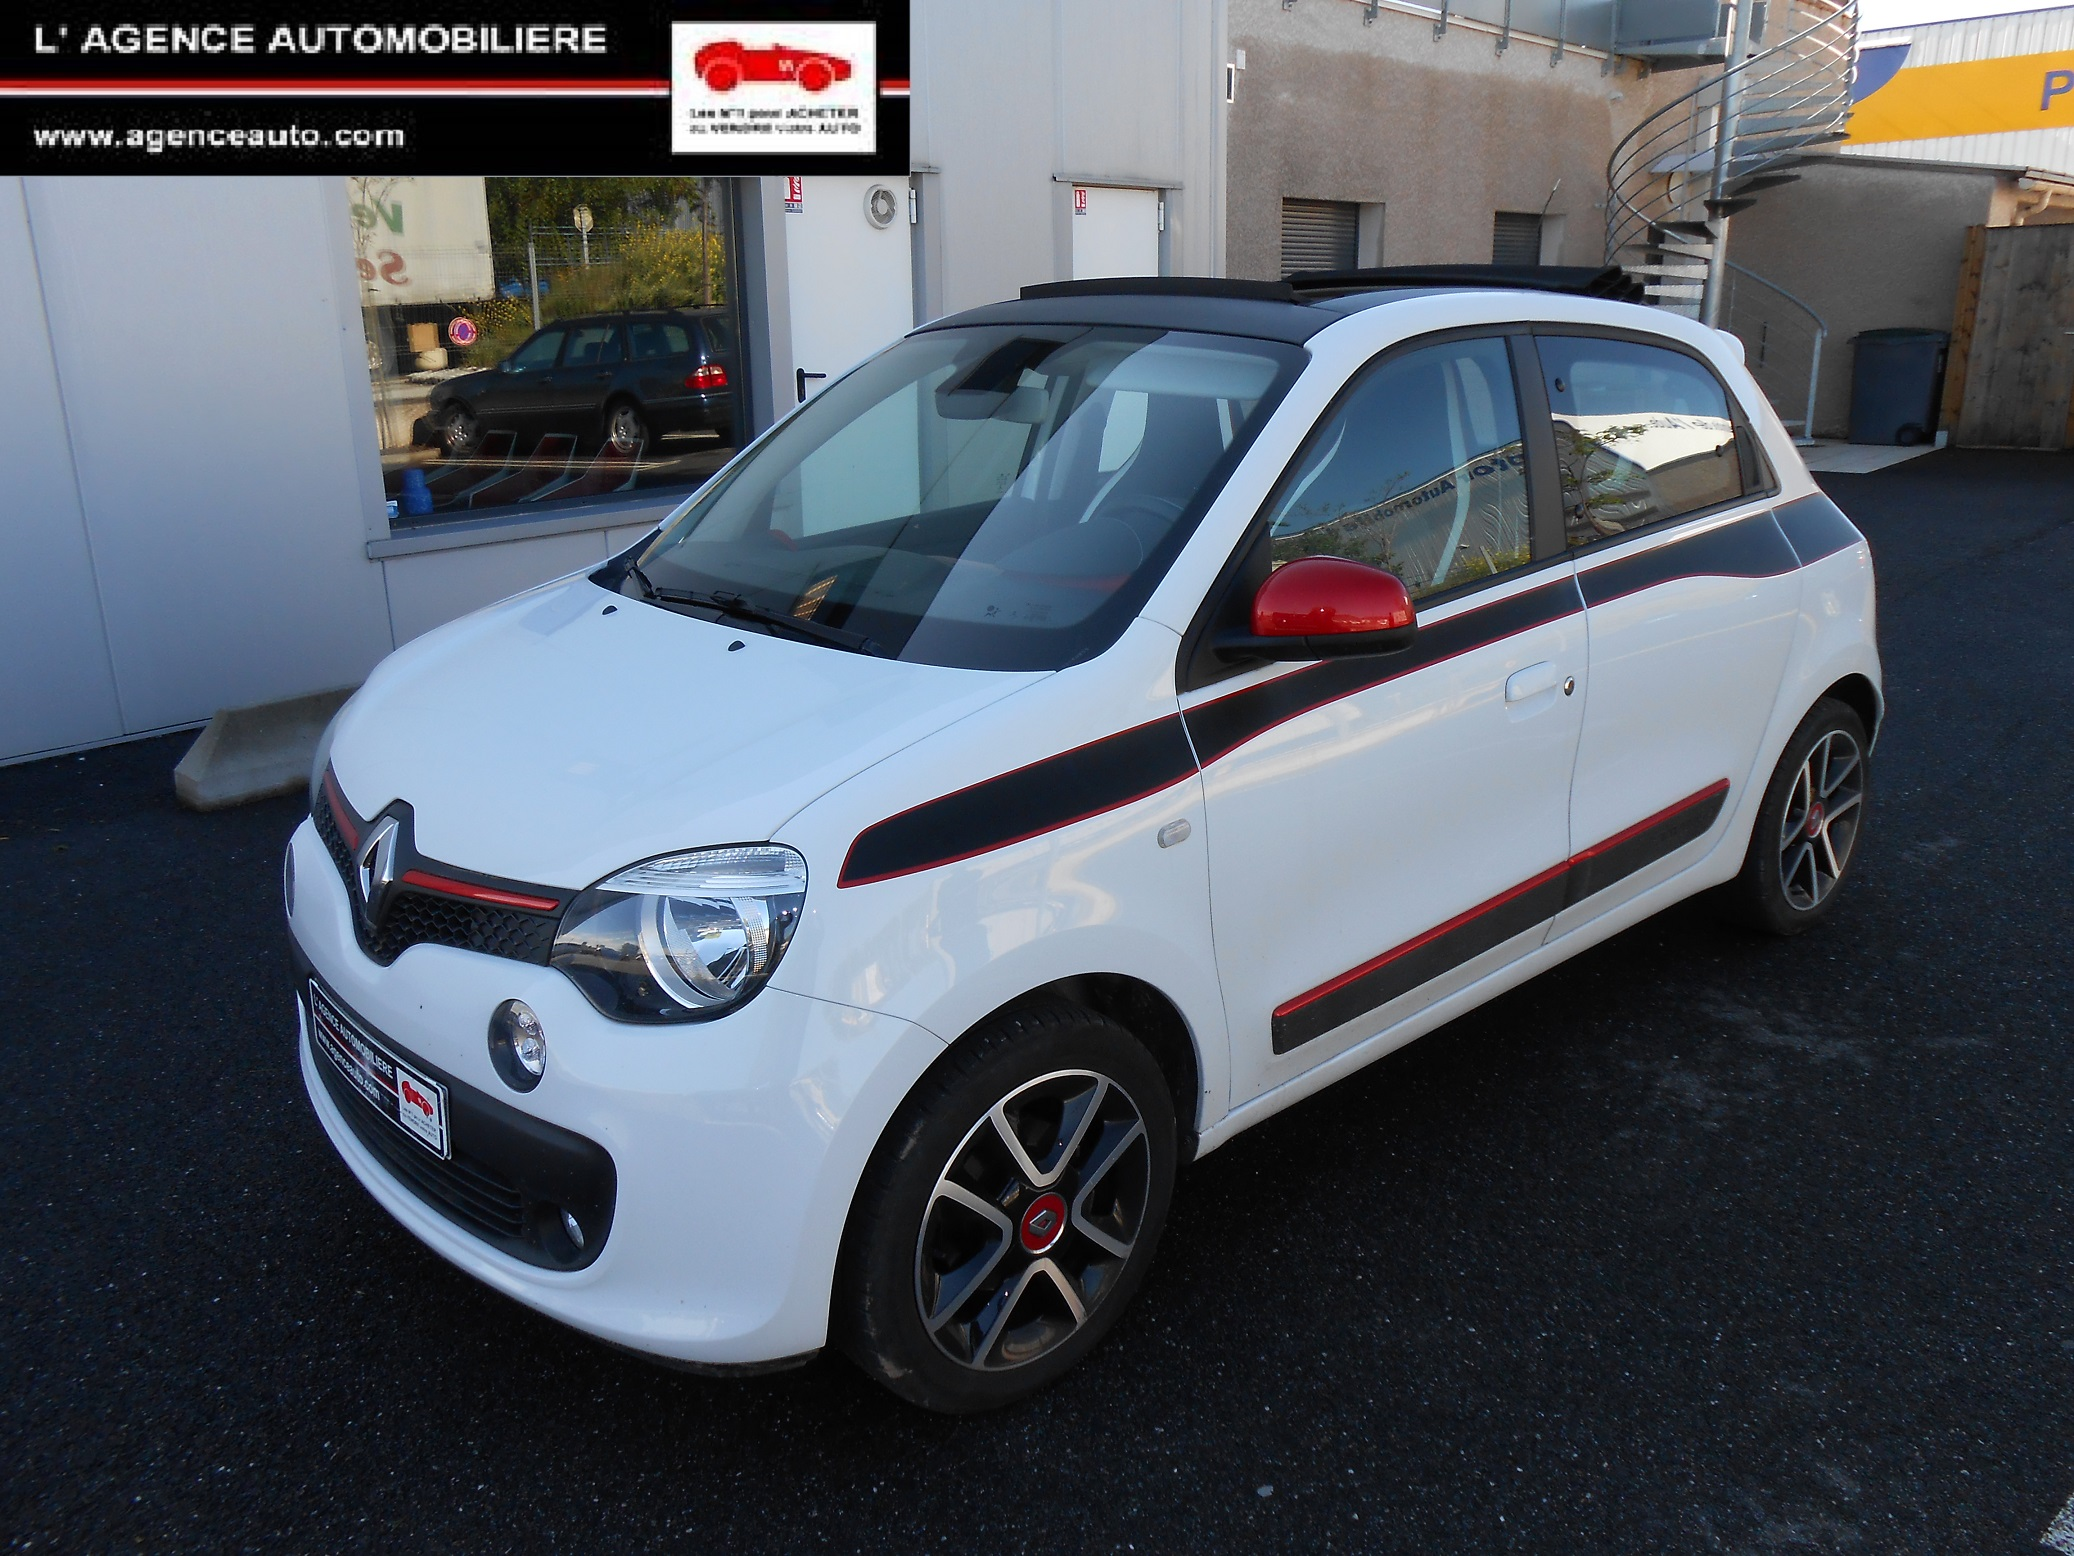 renault twingo iii 0 9 tce 90 sl edition one toit decouvrable occasion carcassonne pas cher. Black Bedroom Furniture Sets. Home Design Ideas